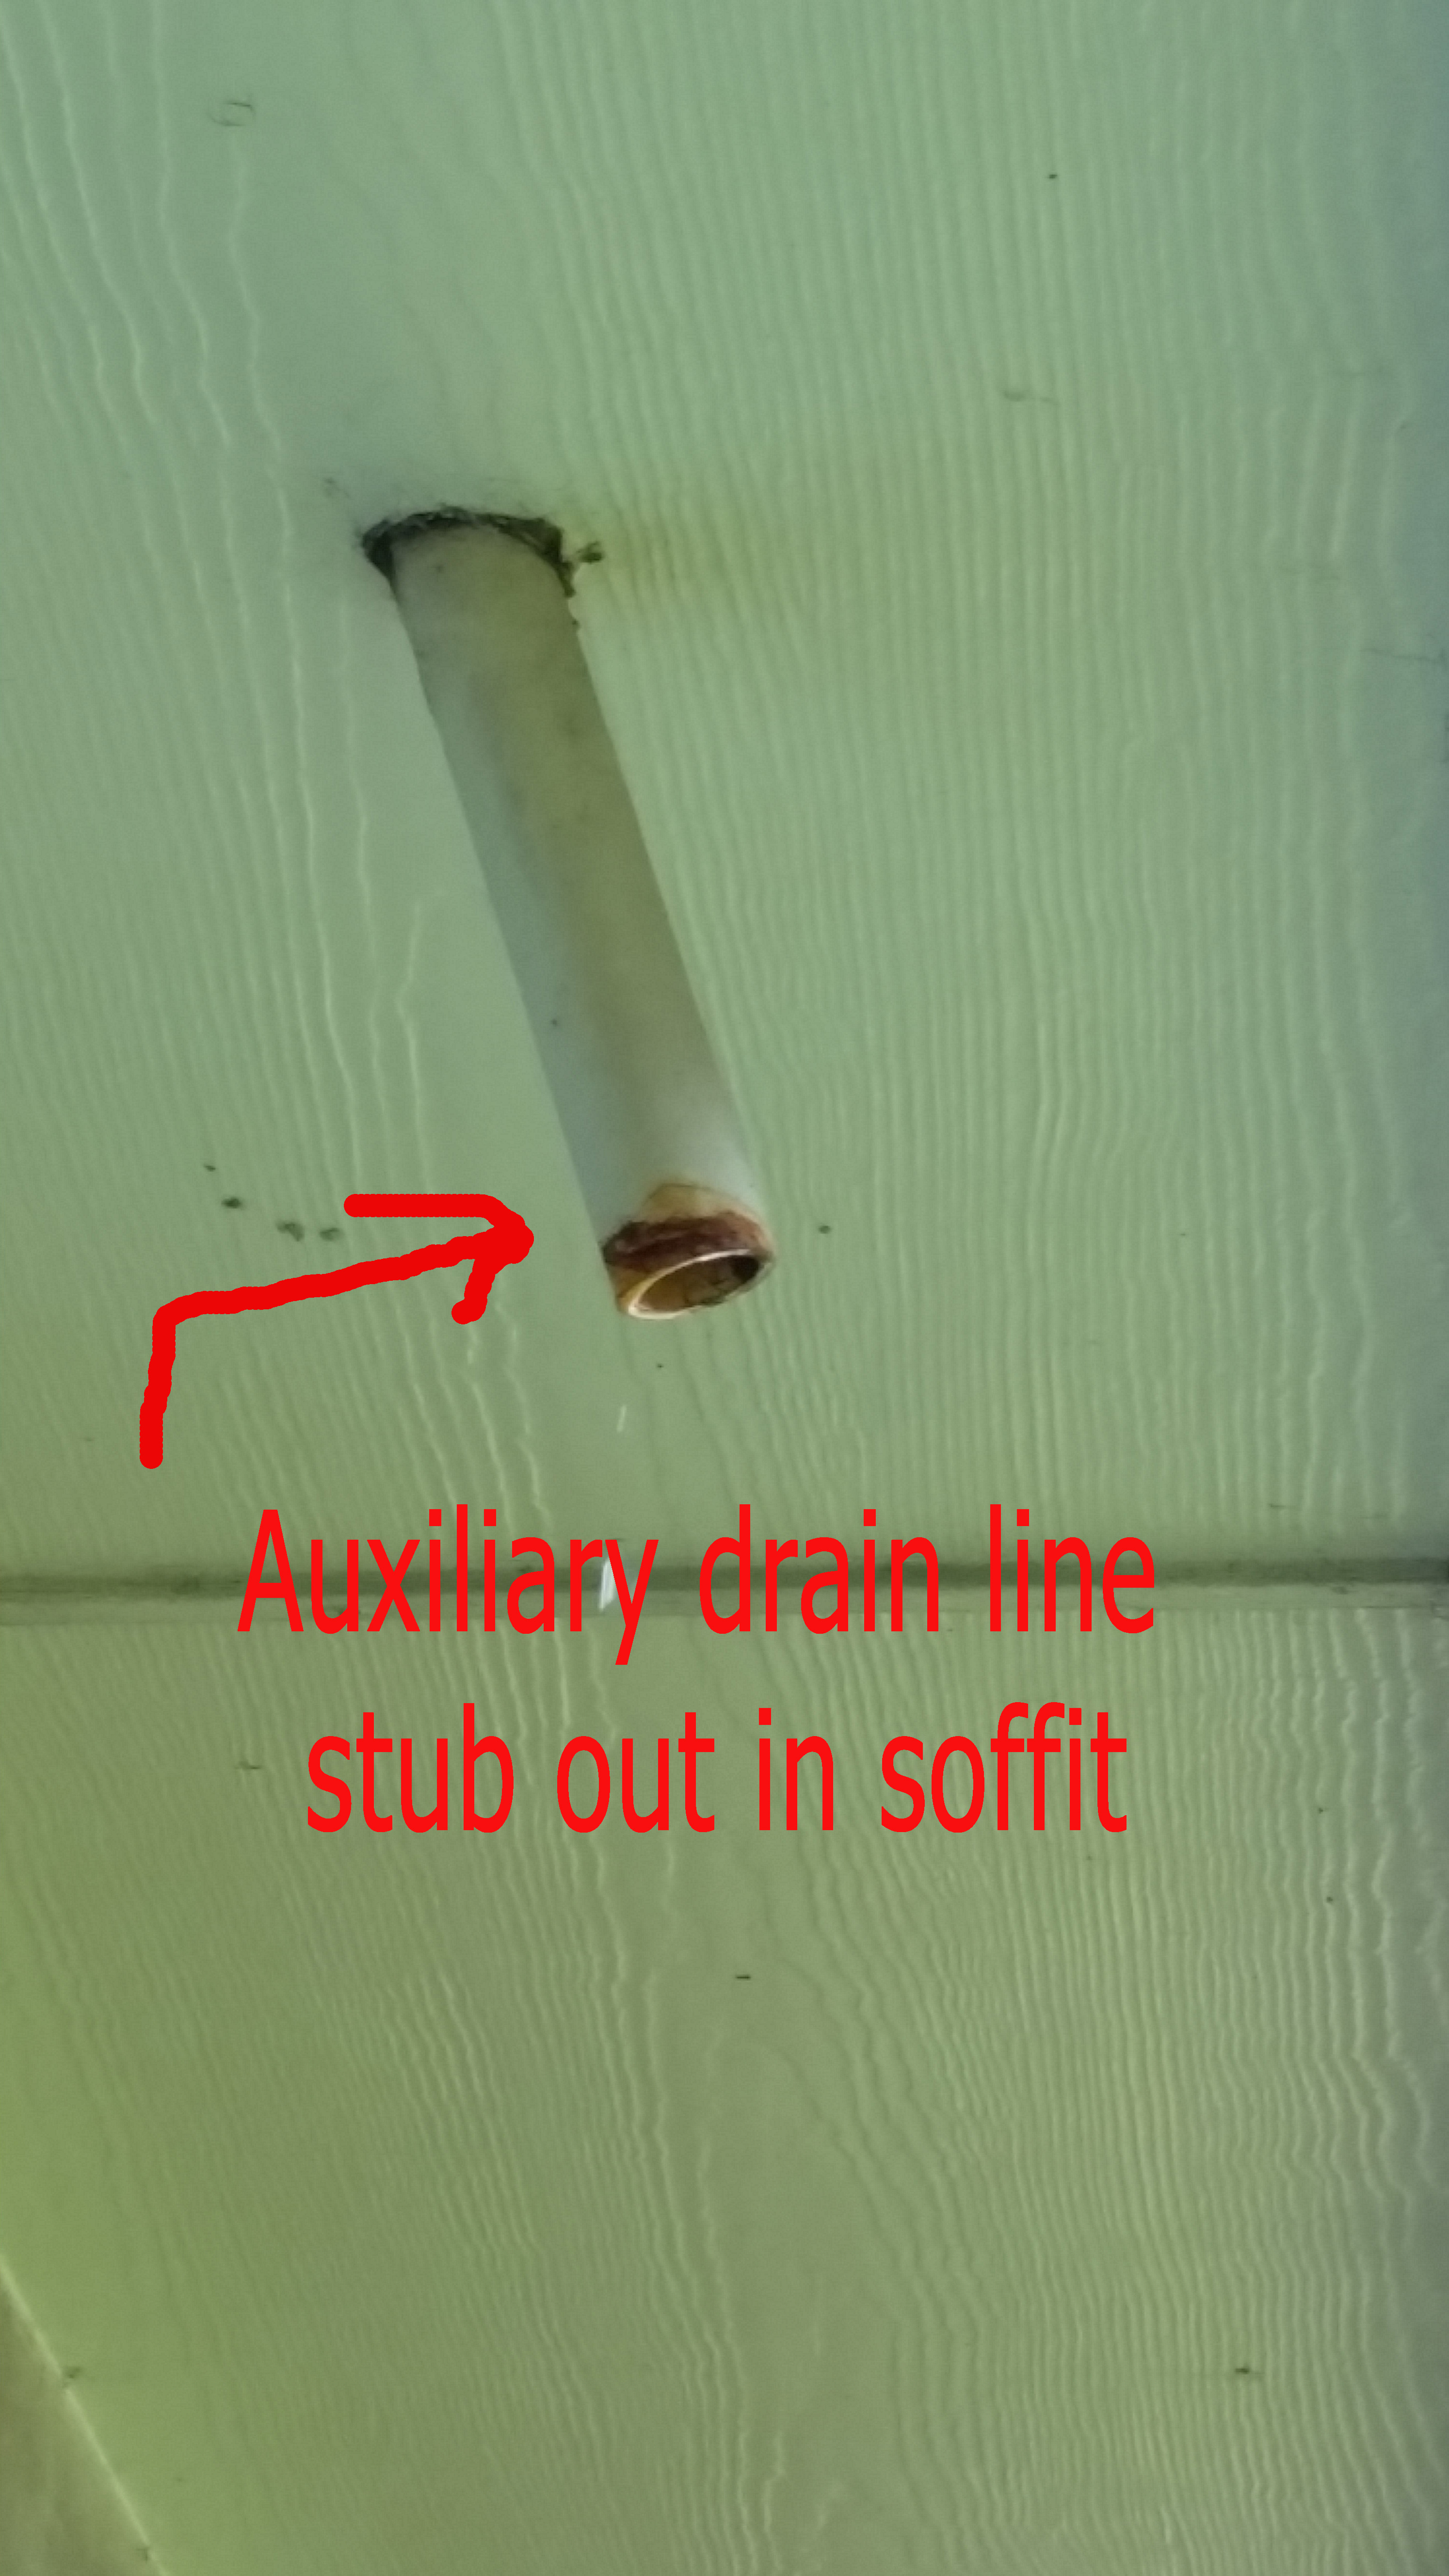 Water dripping out aux drain line stub out soffit